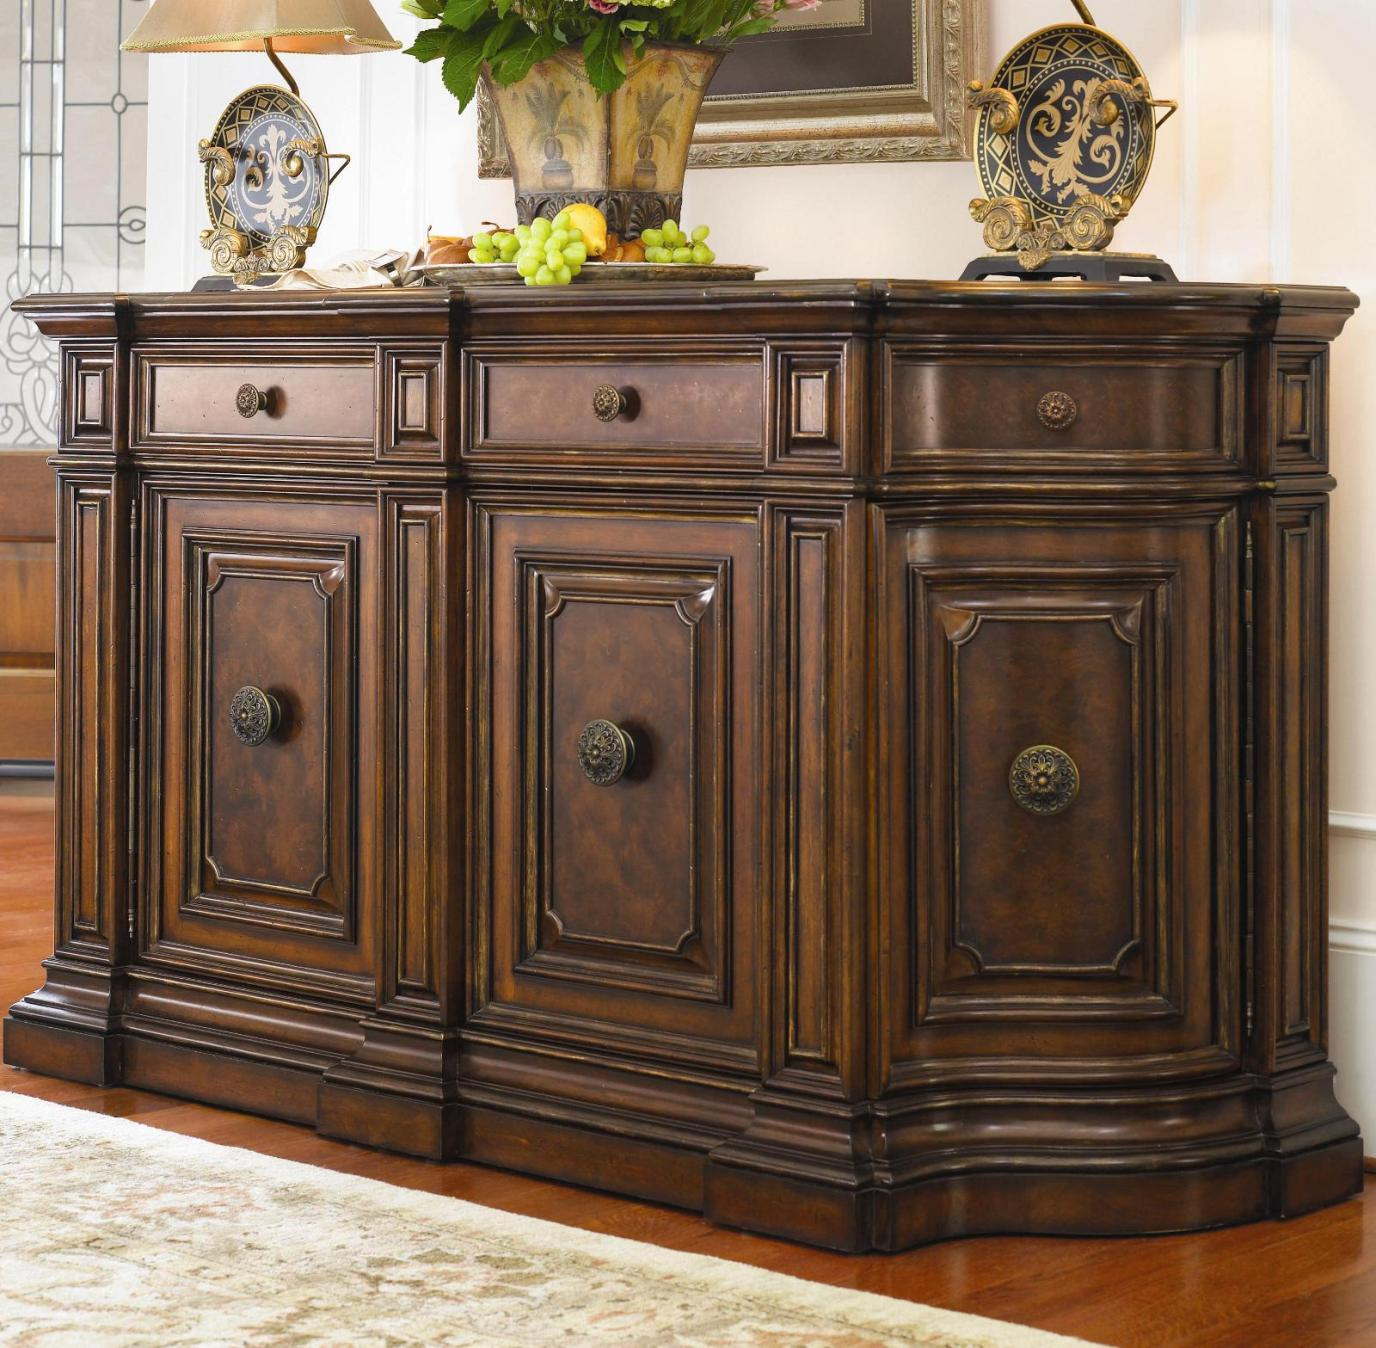 2017 dining room buffet a maximum functionality with for Dining room buffet